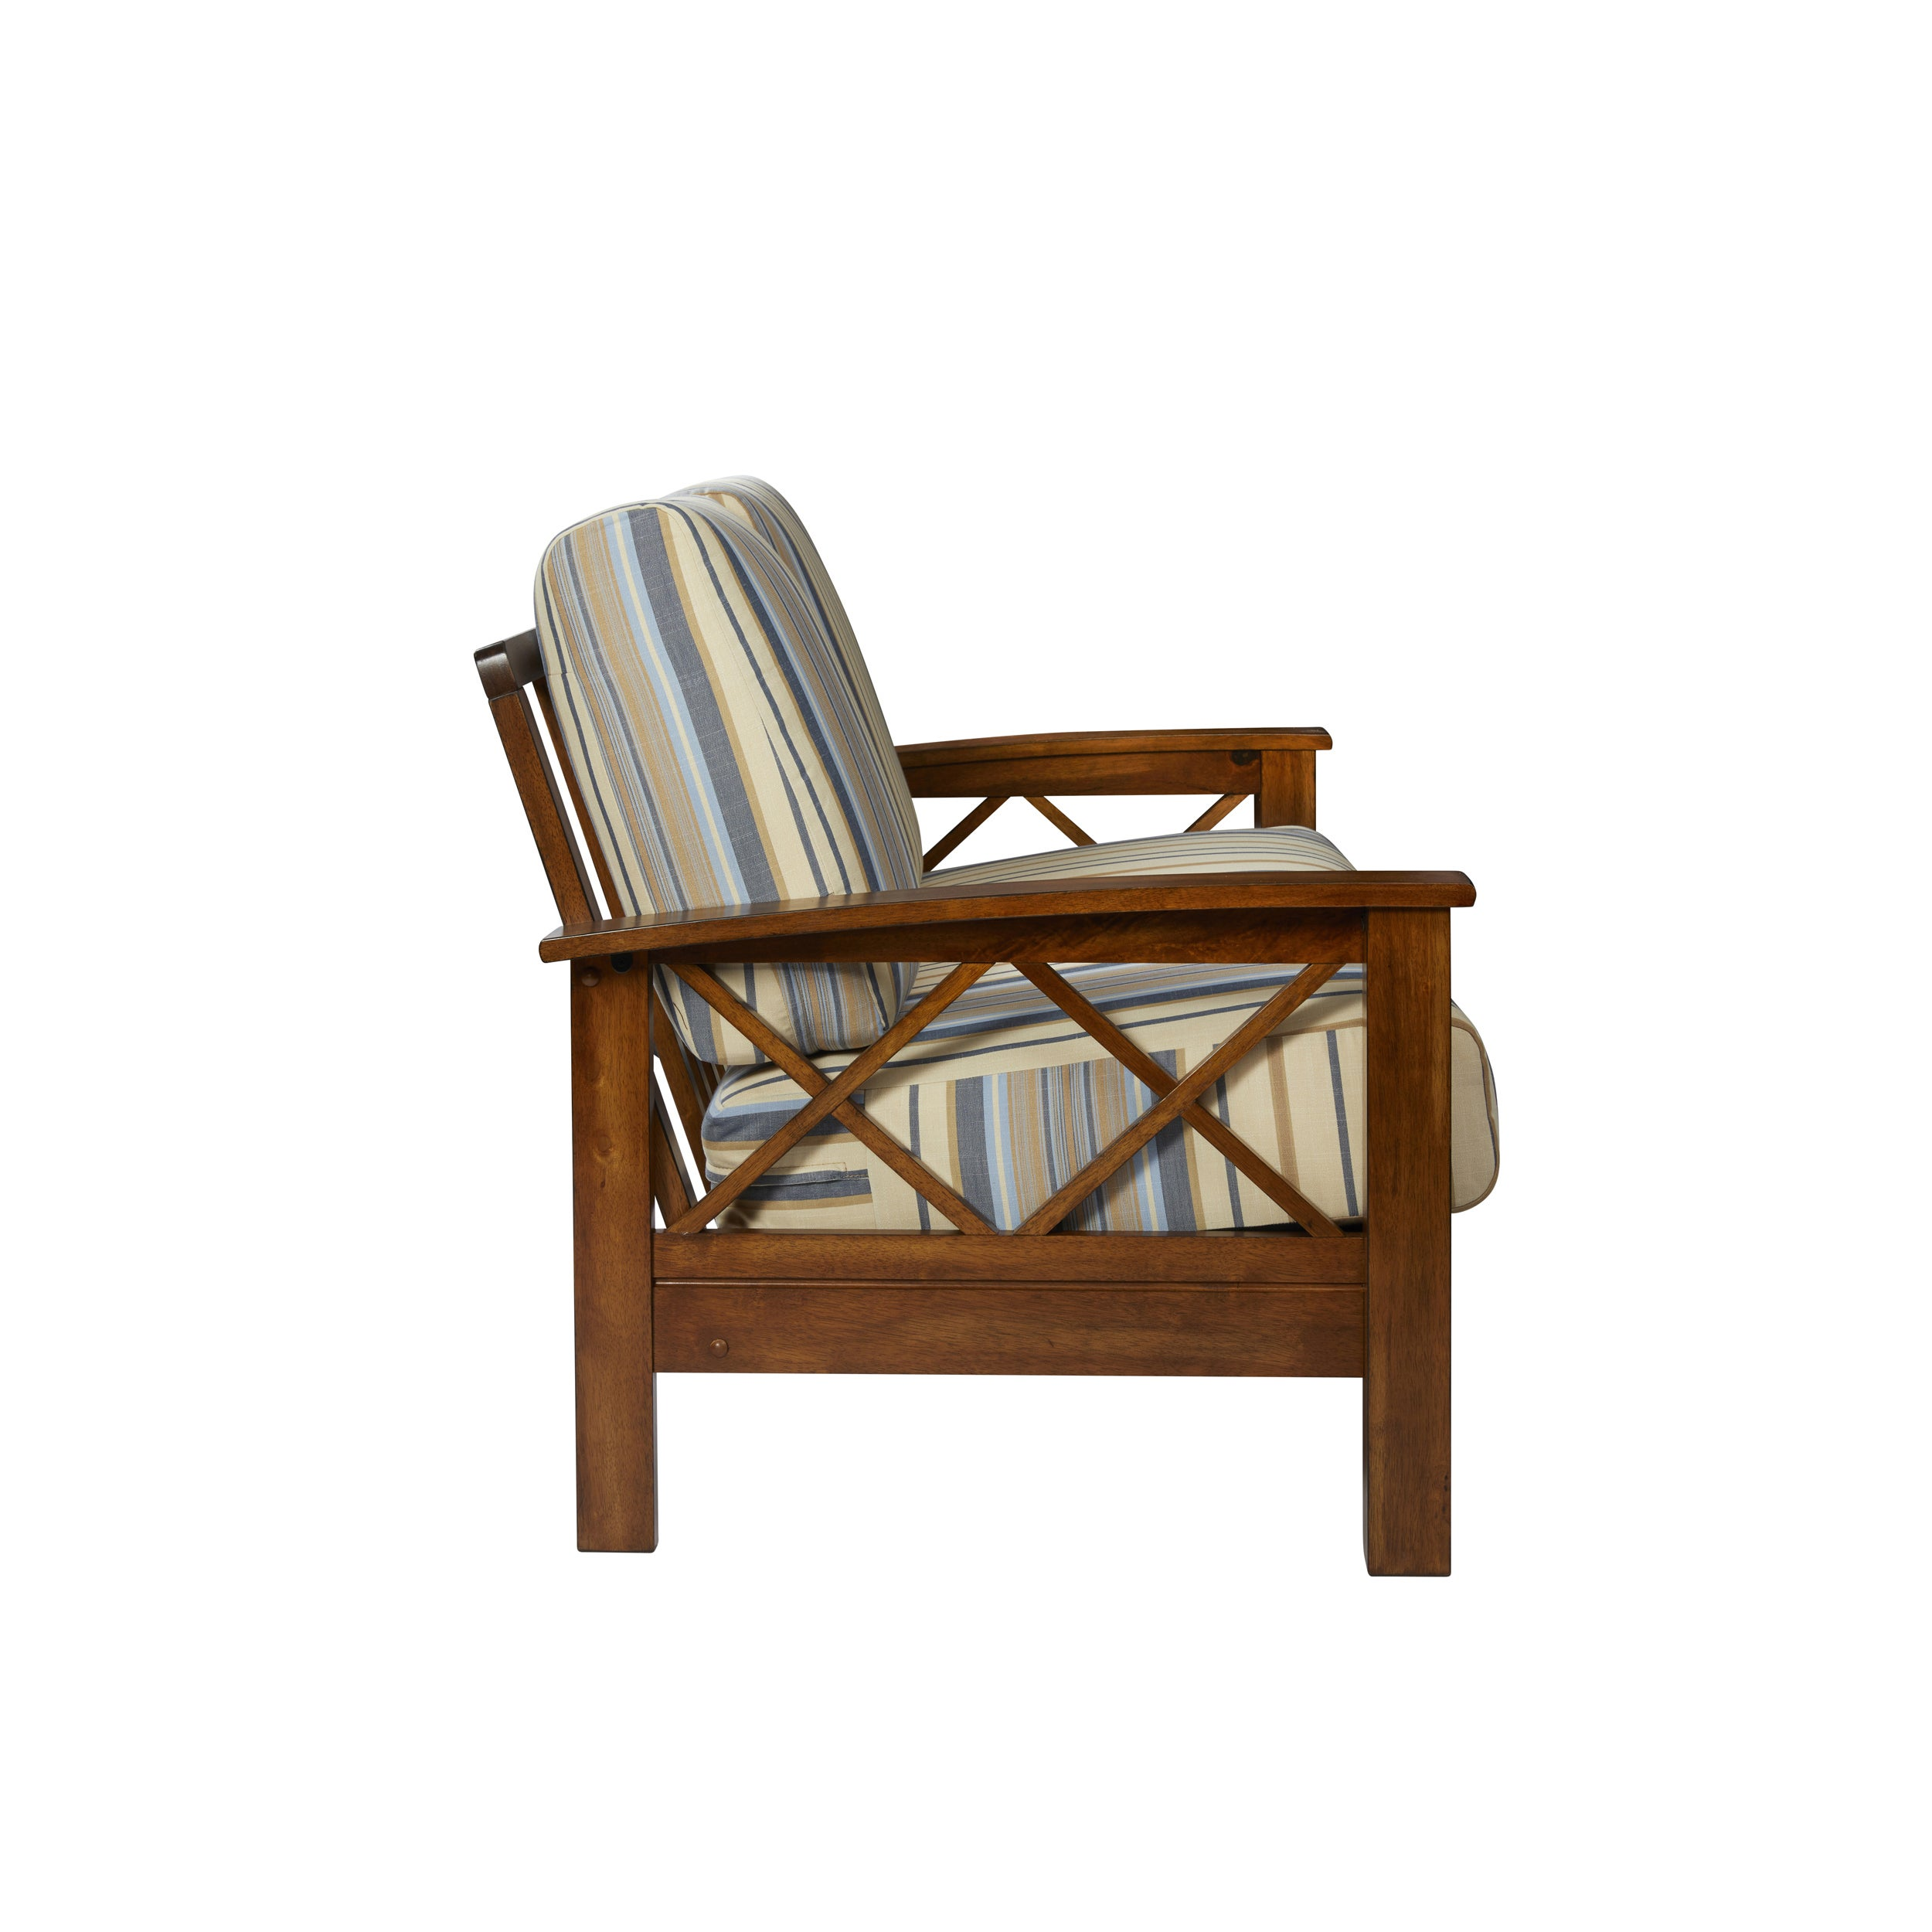 harrison loveseat hairston leather topic wood frame thing home love brown seats morris wooden